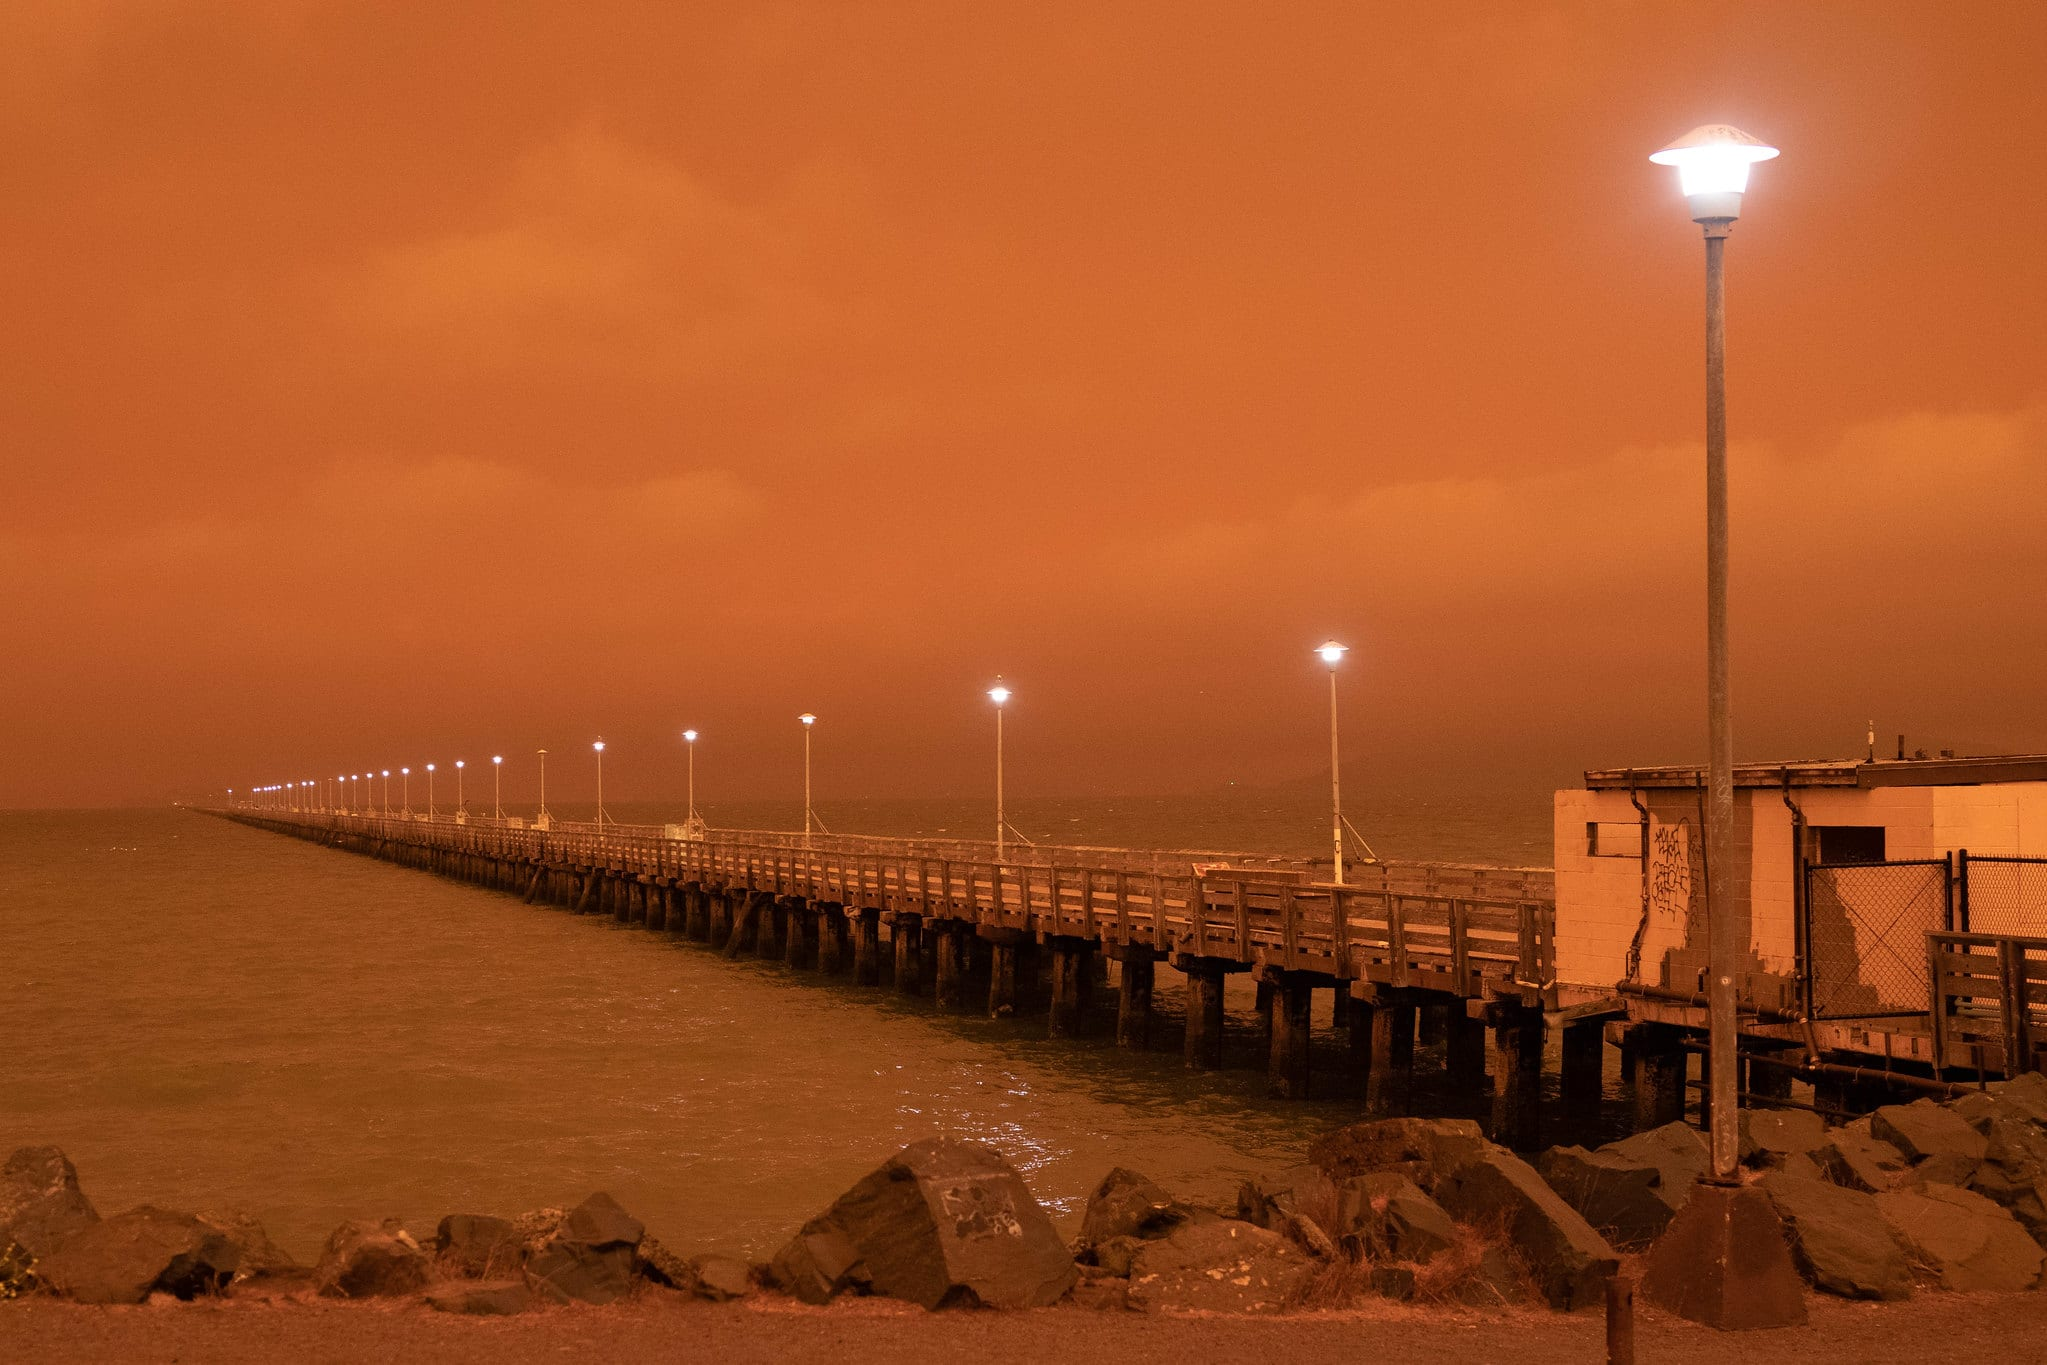 pier in strange orange light